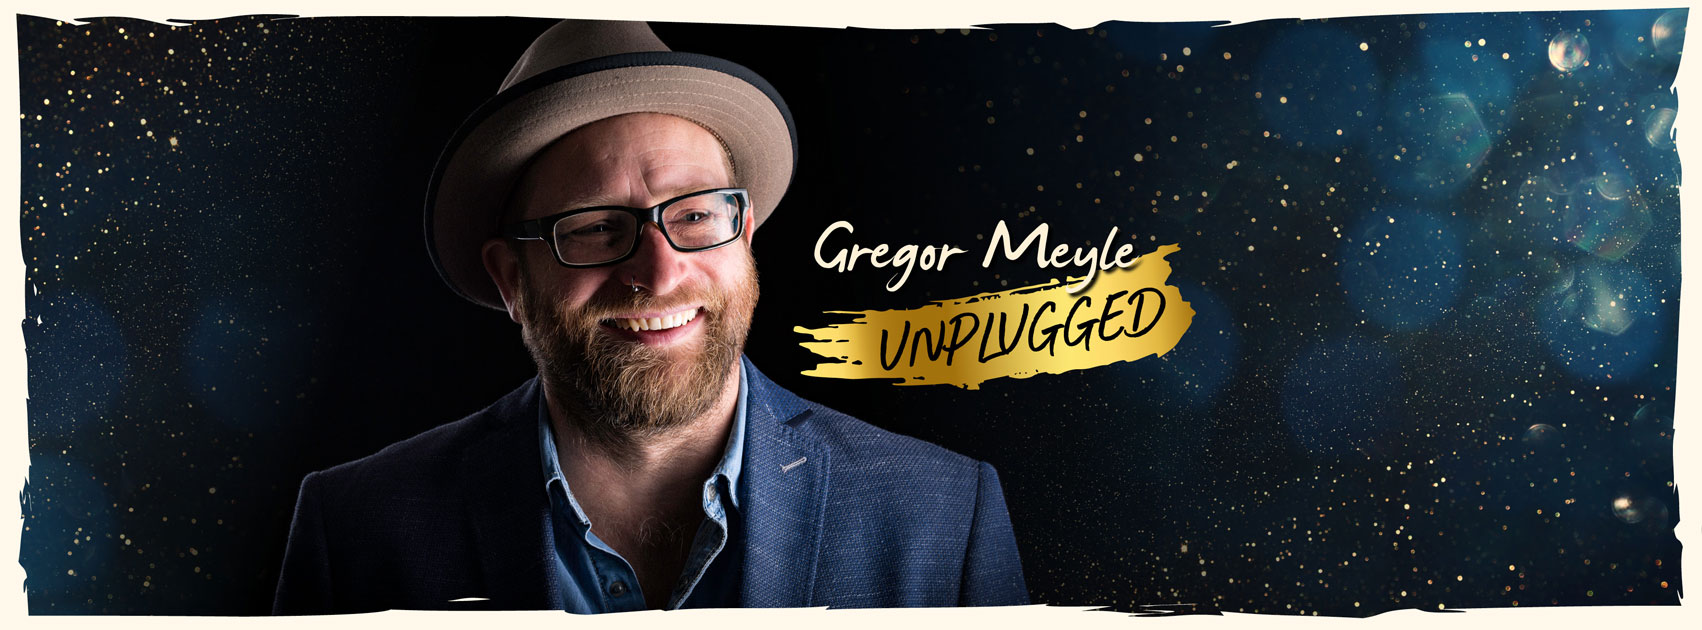 Gregor Meyle Unplugged Tour 2020